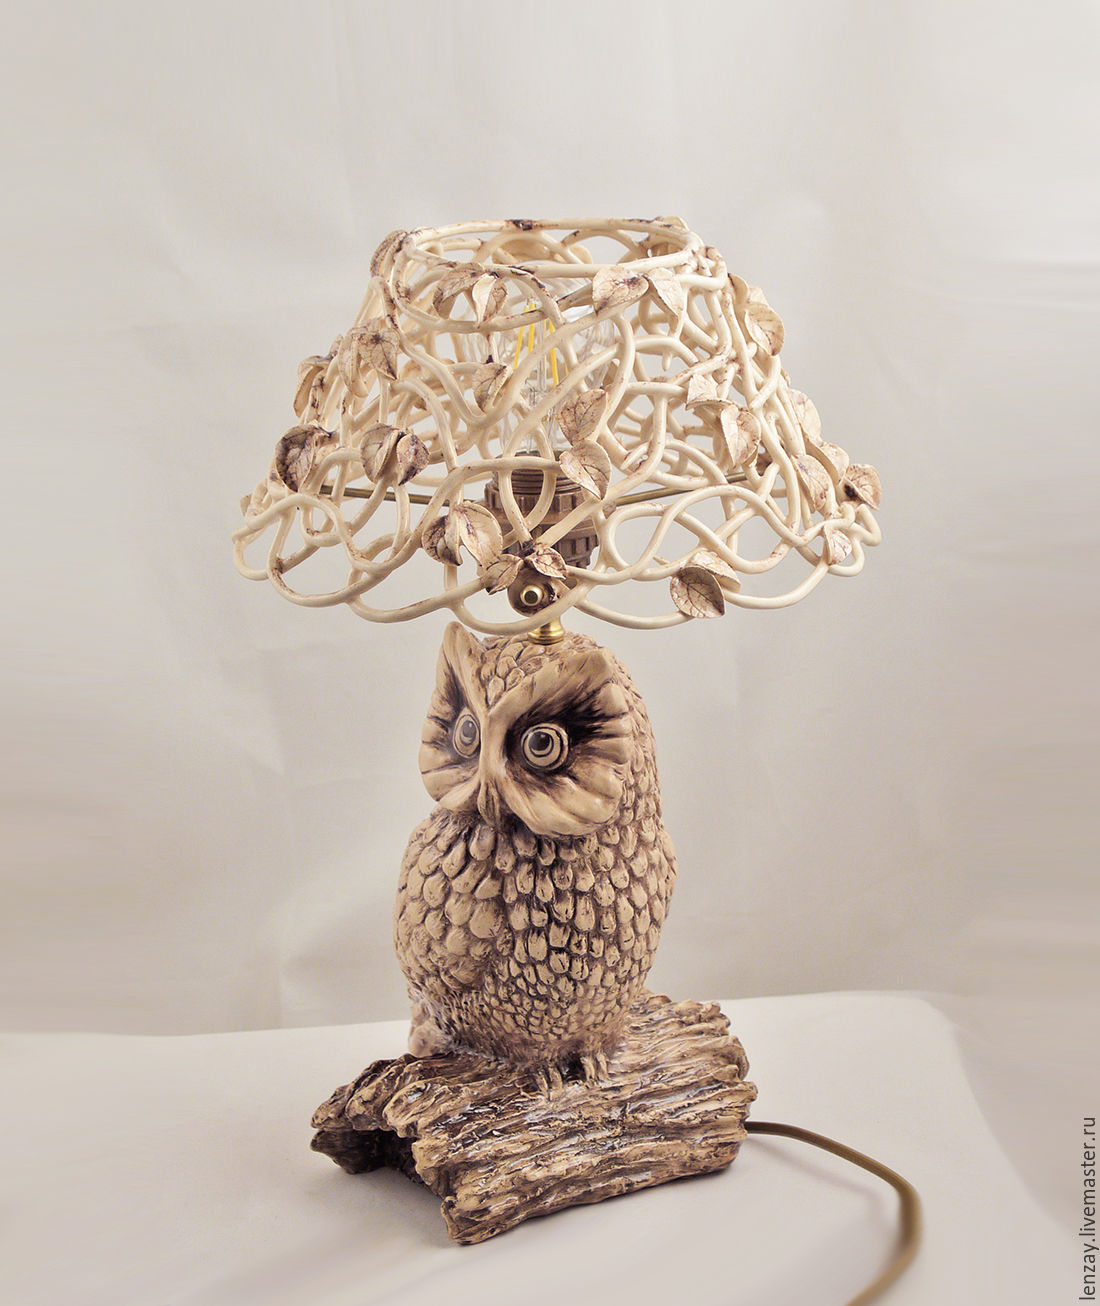 Table lamp owl shop online on livemaster with shipping 7856dcom ceramic table lamp owl the lampshade is made in authors technique mozeypictures Choice Image